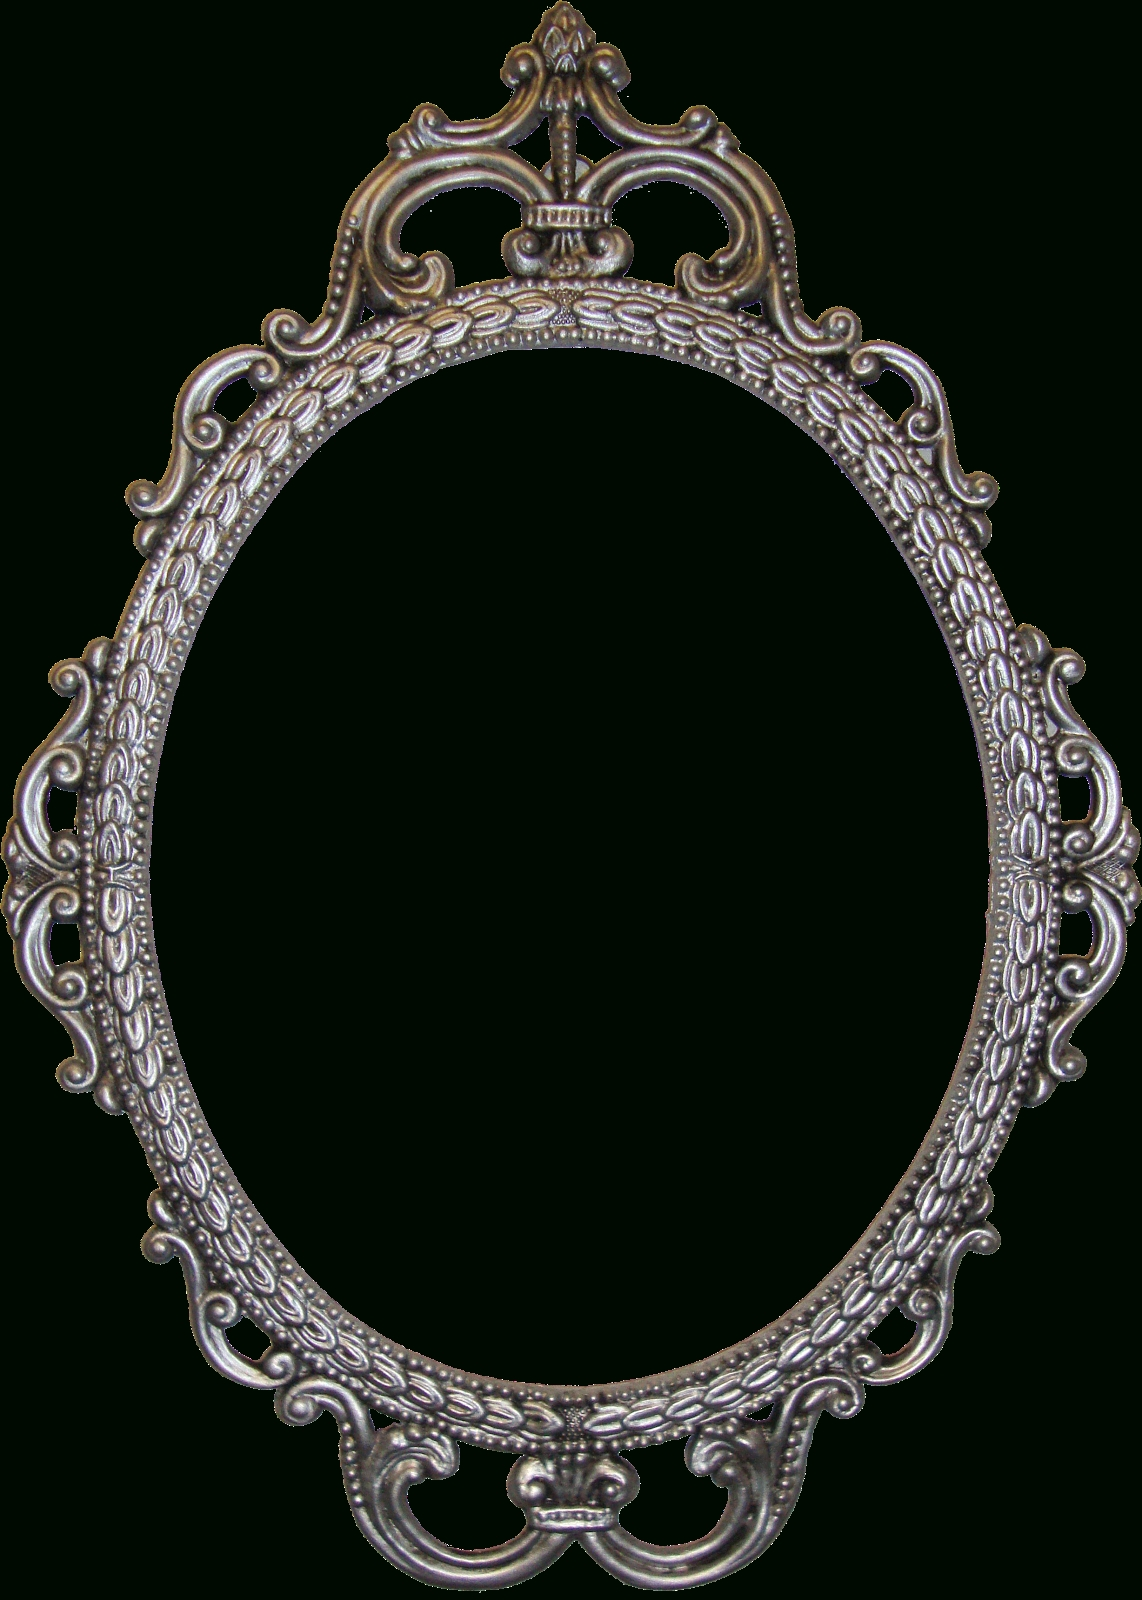 Accessories: Fair Picture Of Vintage Chic Ornate Silver Metallic regarding Ornate Oval Mirrors (Image 2 of 25)